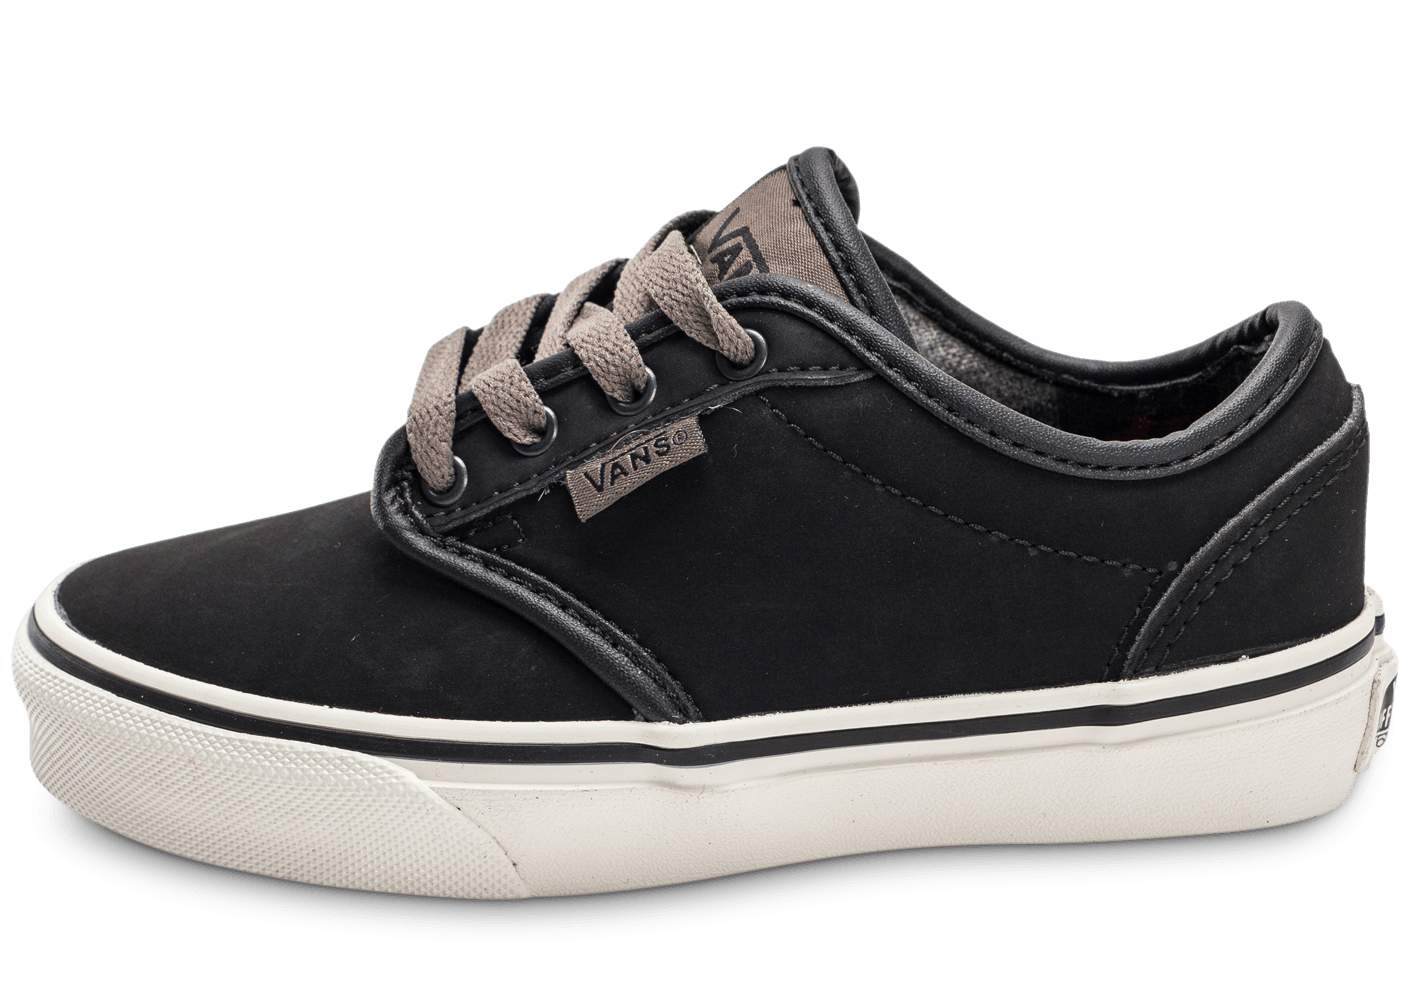 vans atwood low cuir enfant noire chaussures chaussures chausport. Black Bedroom Furniture Sets. Home Design Ideas